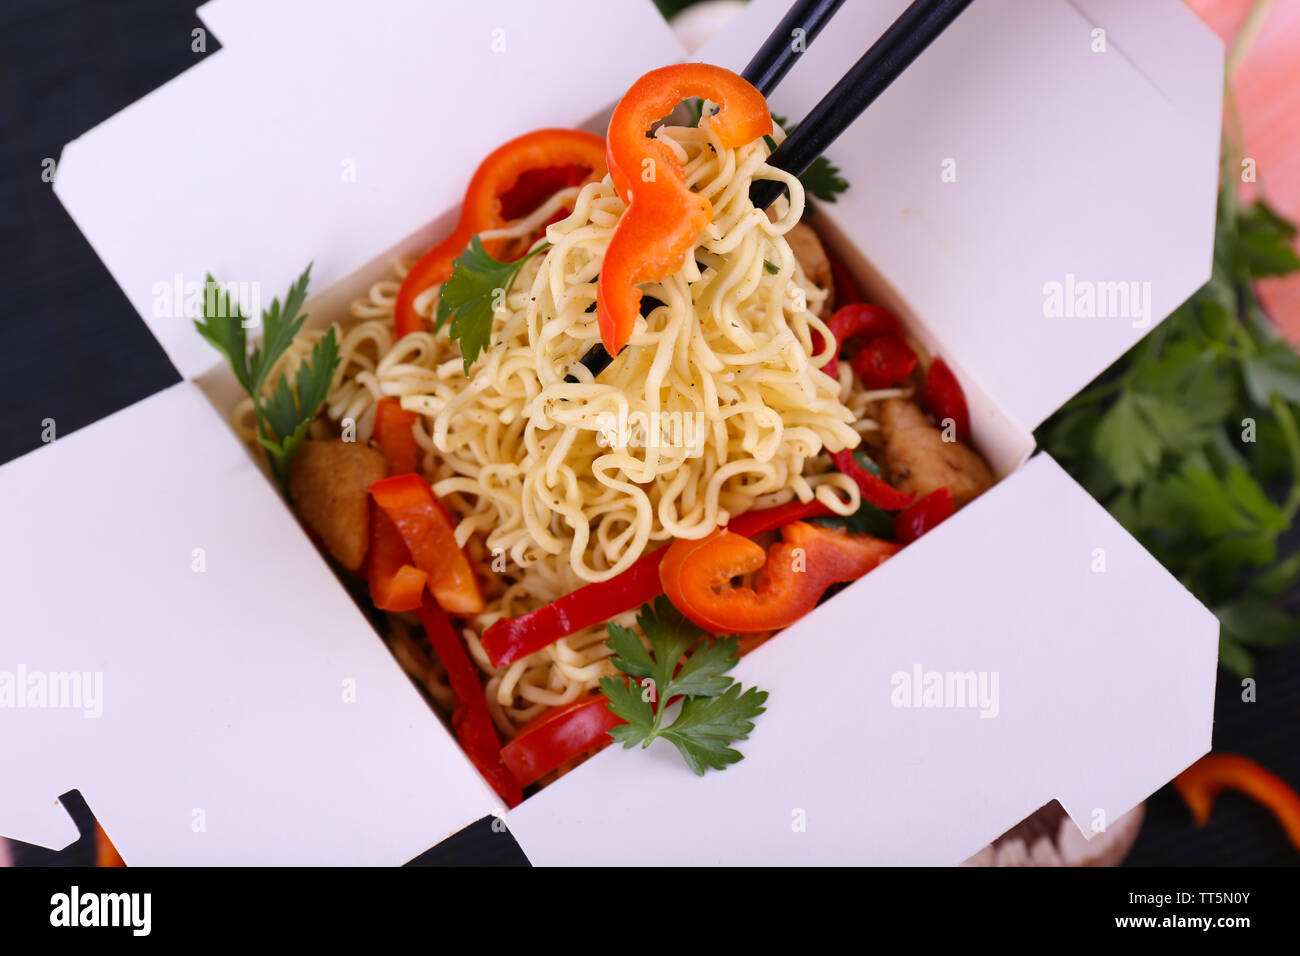 Chinese noodles in takeaway box on black mat background - Stock Image